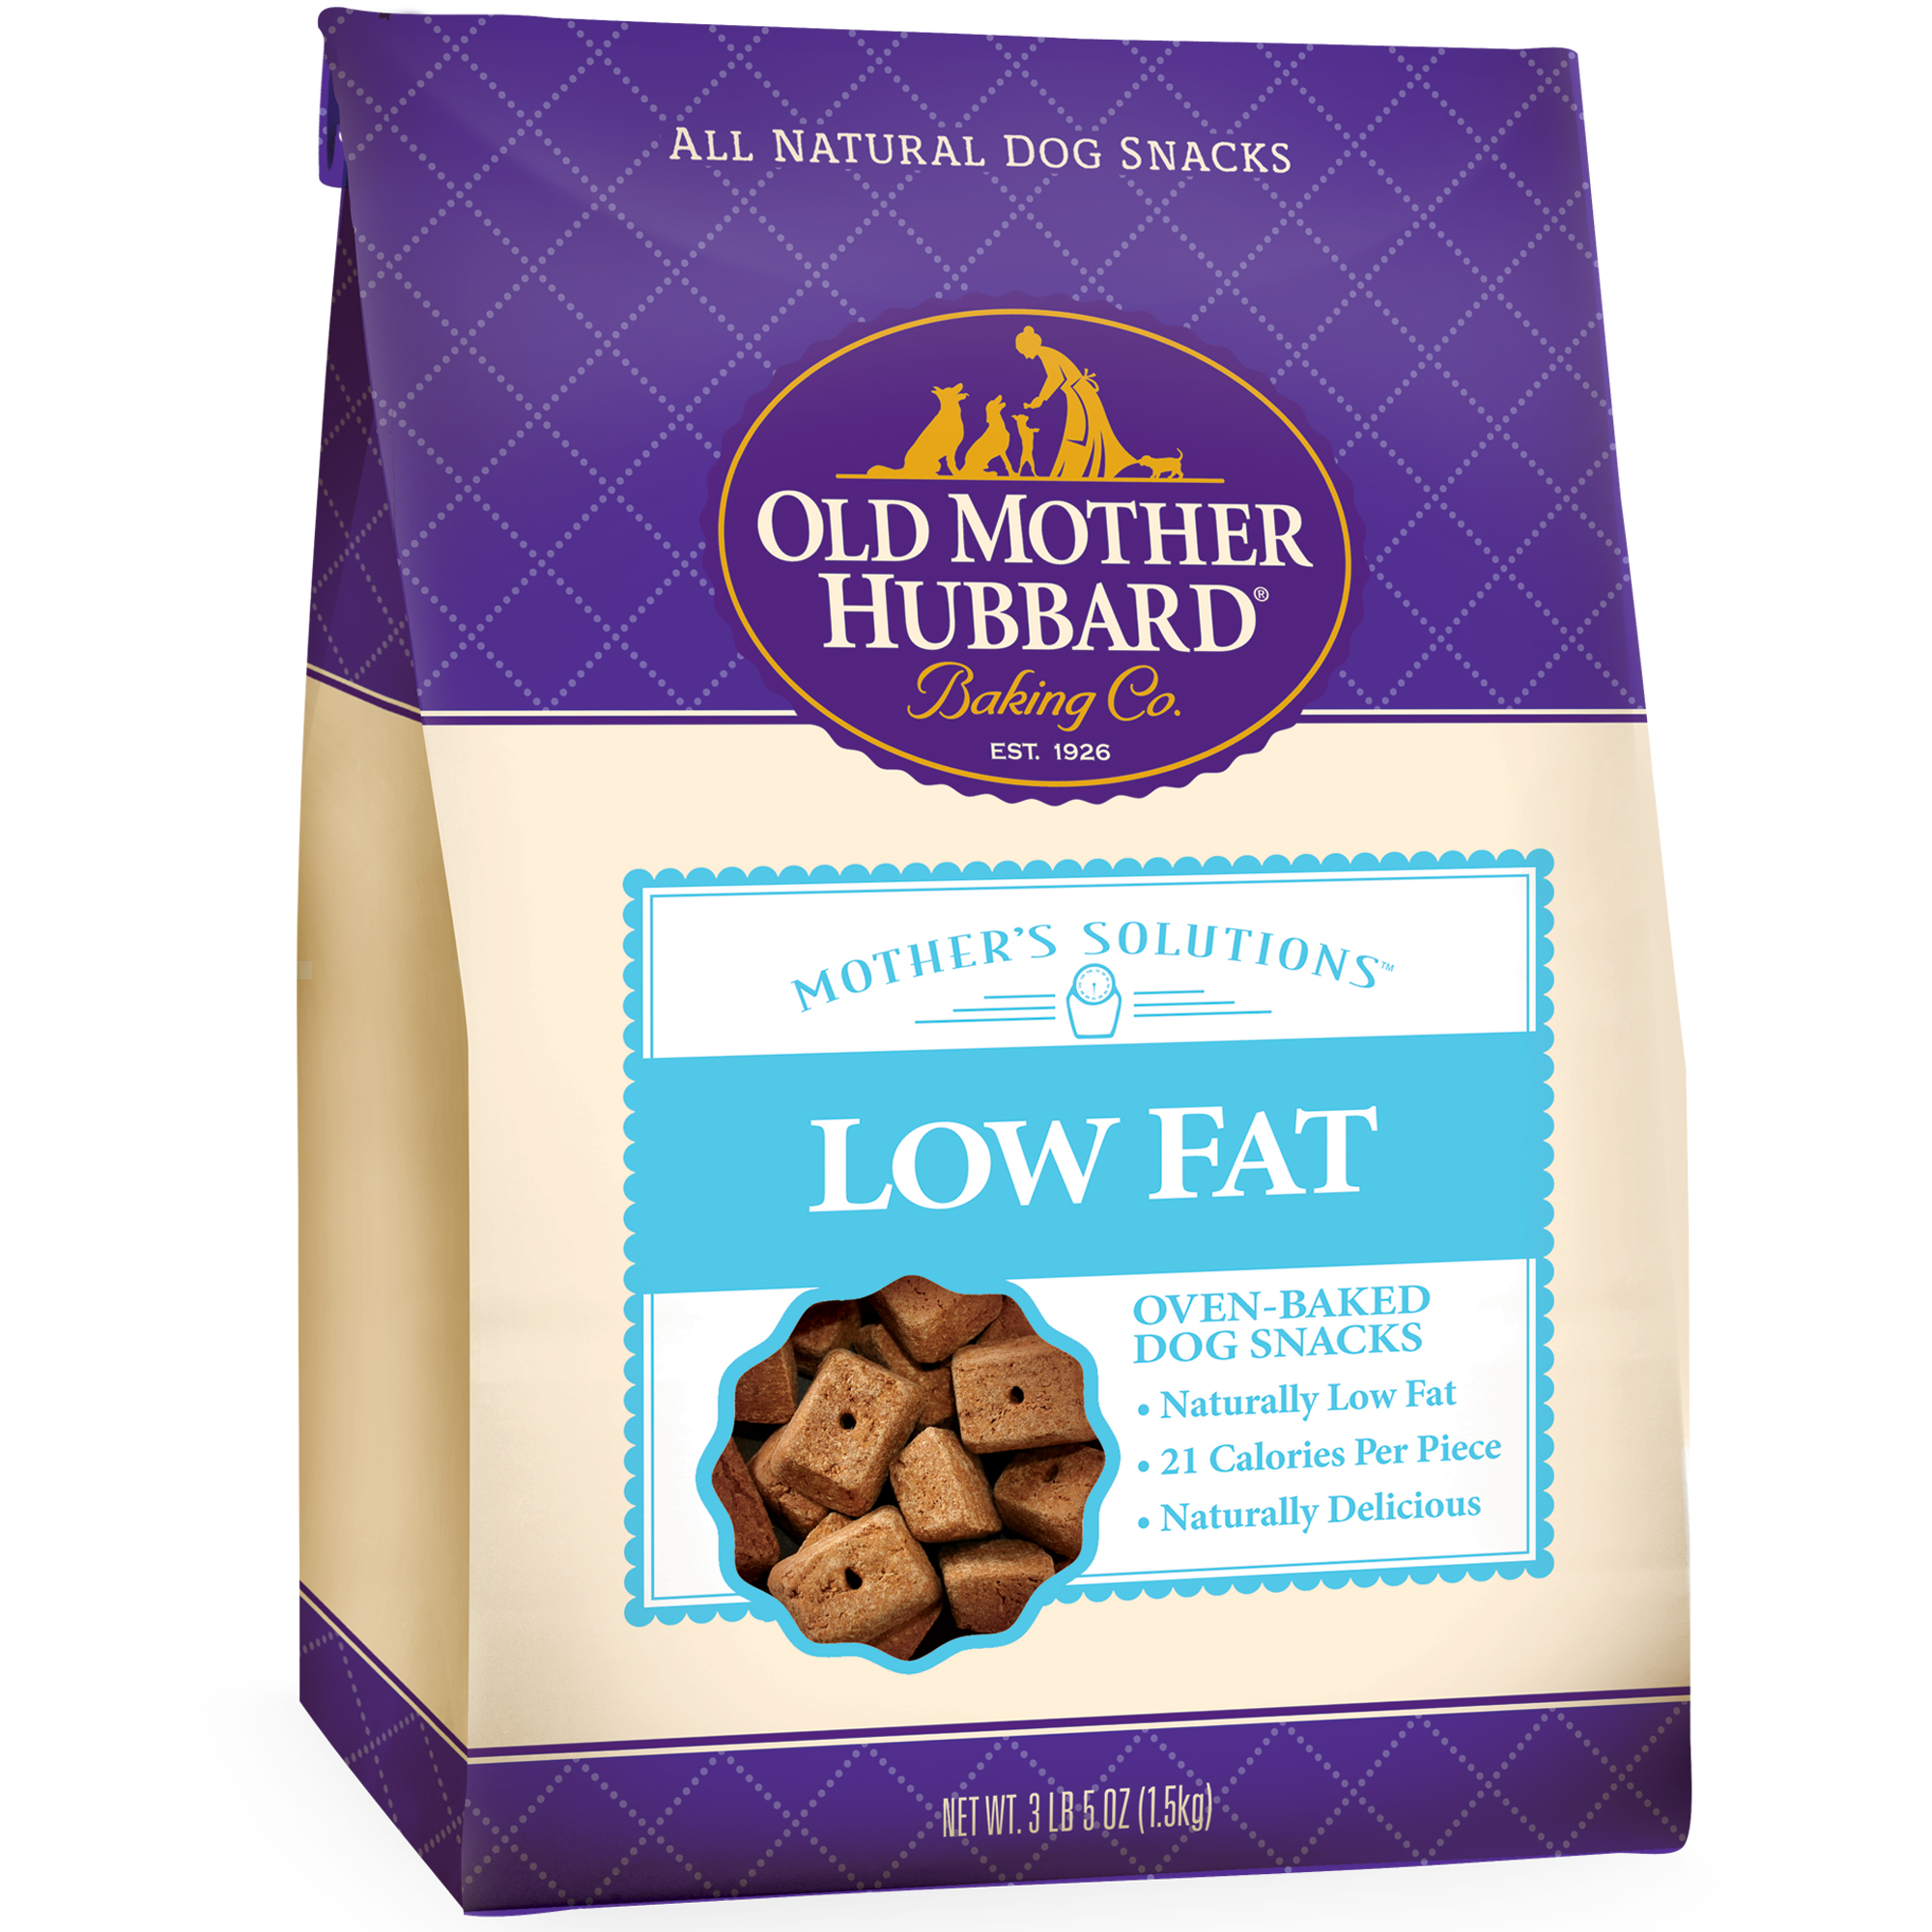 Old Mother Hubbard Mother's Solutions Low Fat Dog Treats, 3.5 Lb